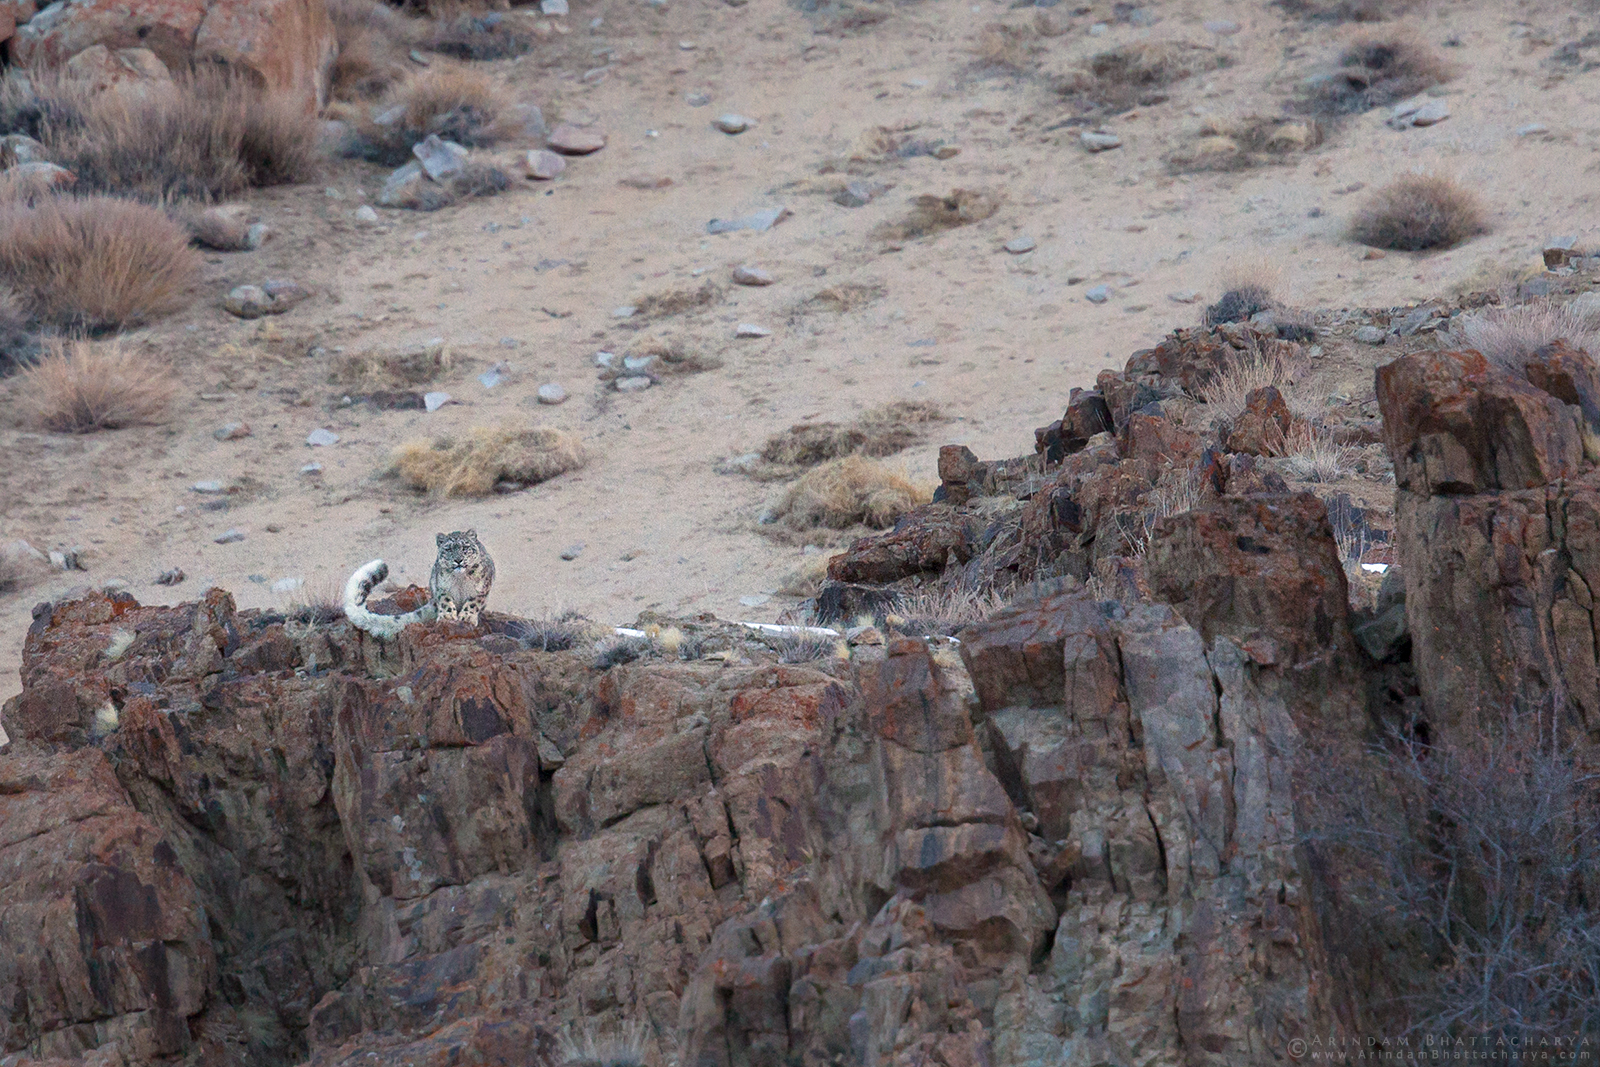 Snow Leopard Ghost of the mountains in Ladakh India by Arindam Bhattacharya